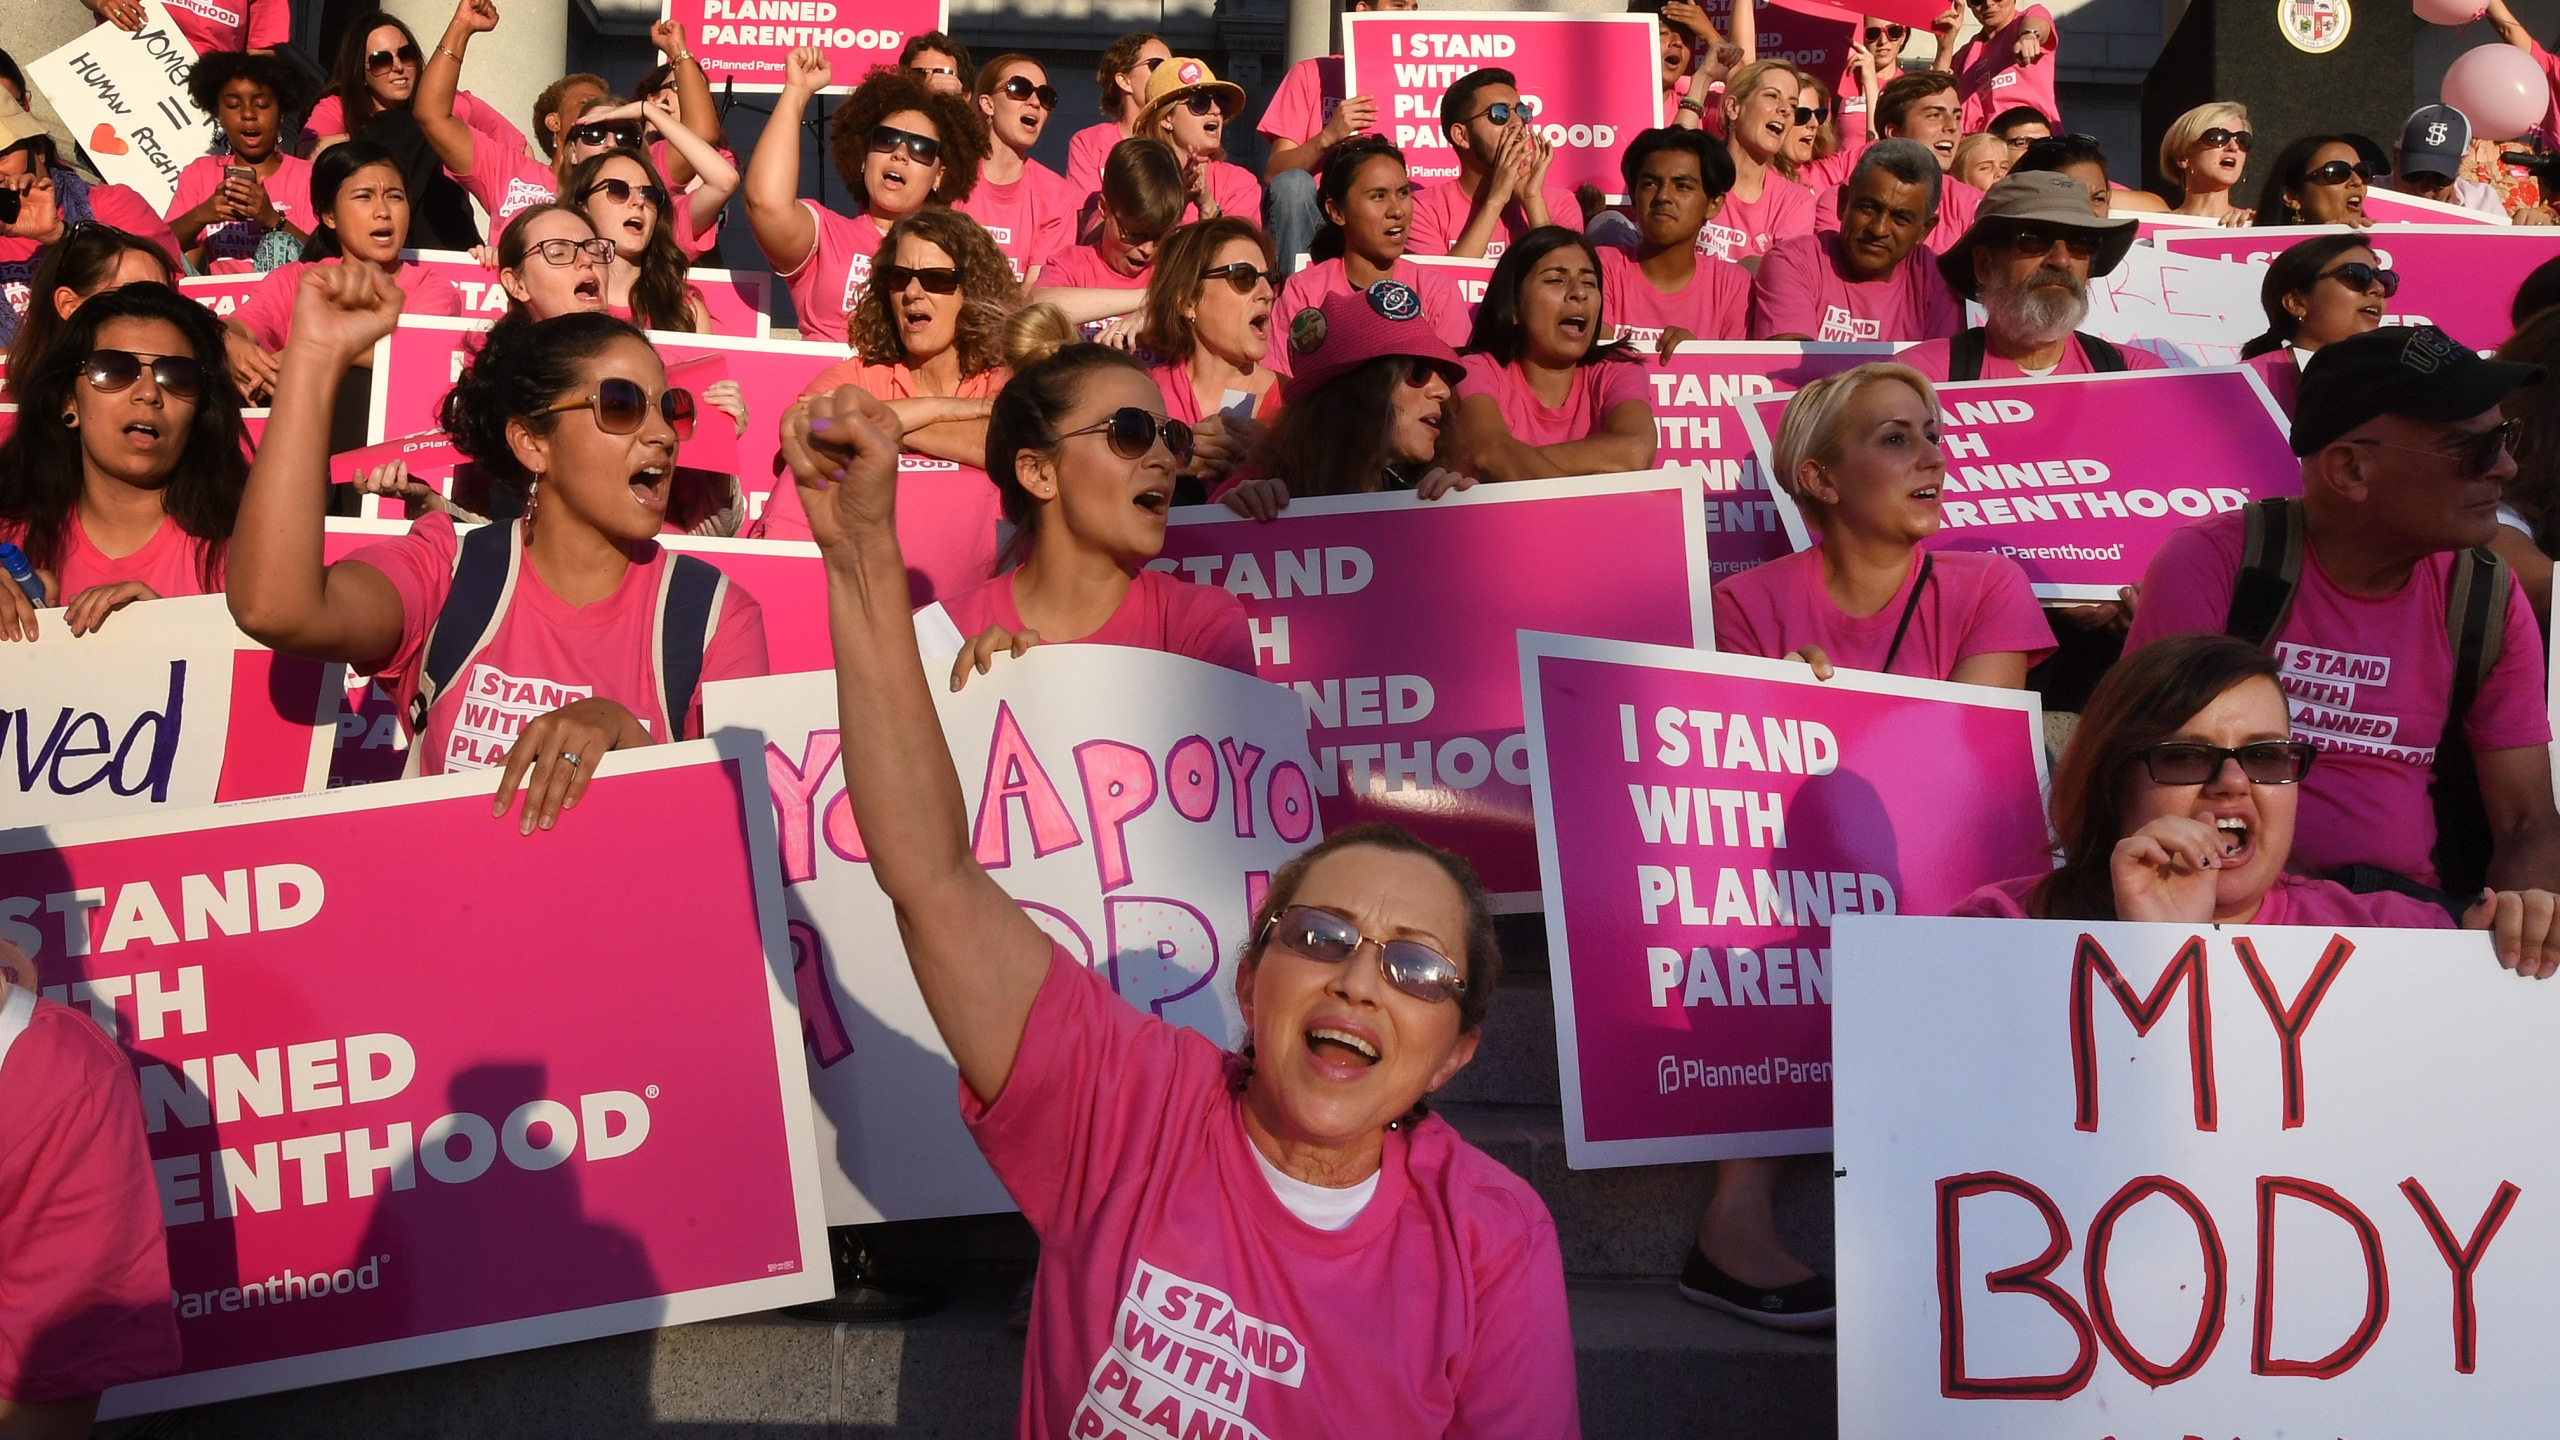 Supporters and patients of Planned Parenthood take part in a rally at Los Angeles City Hall on June 21, 2017. (Credit: Mark Ralston / AFP / Getty Images)